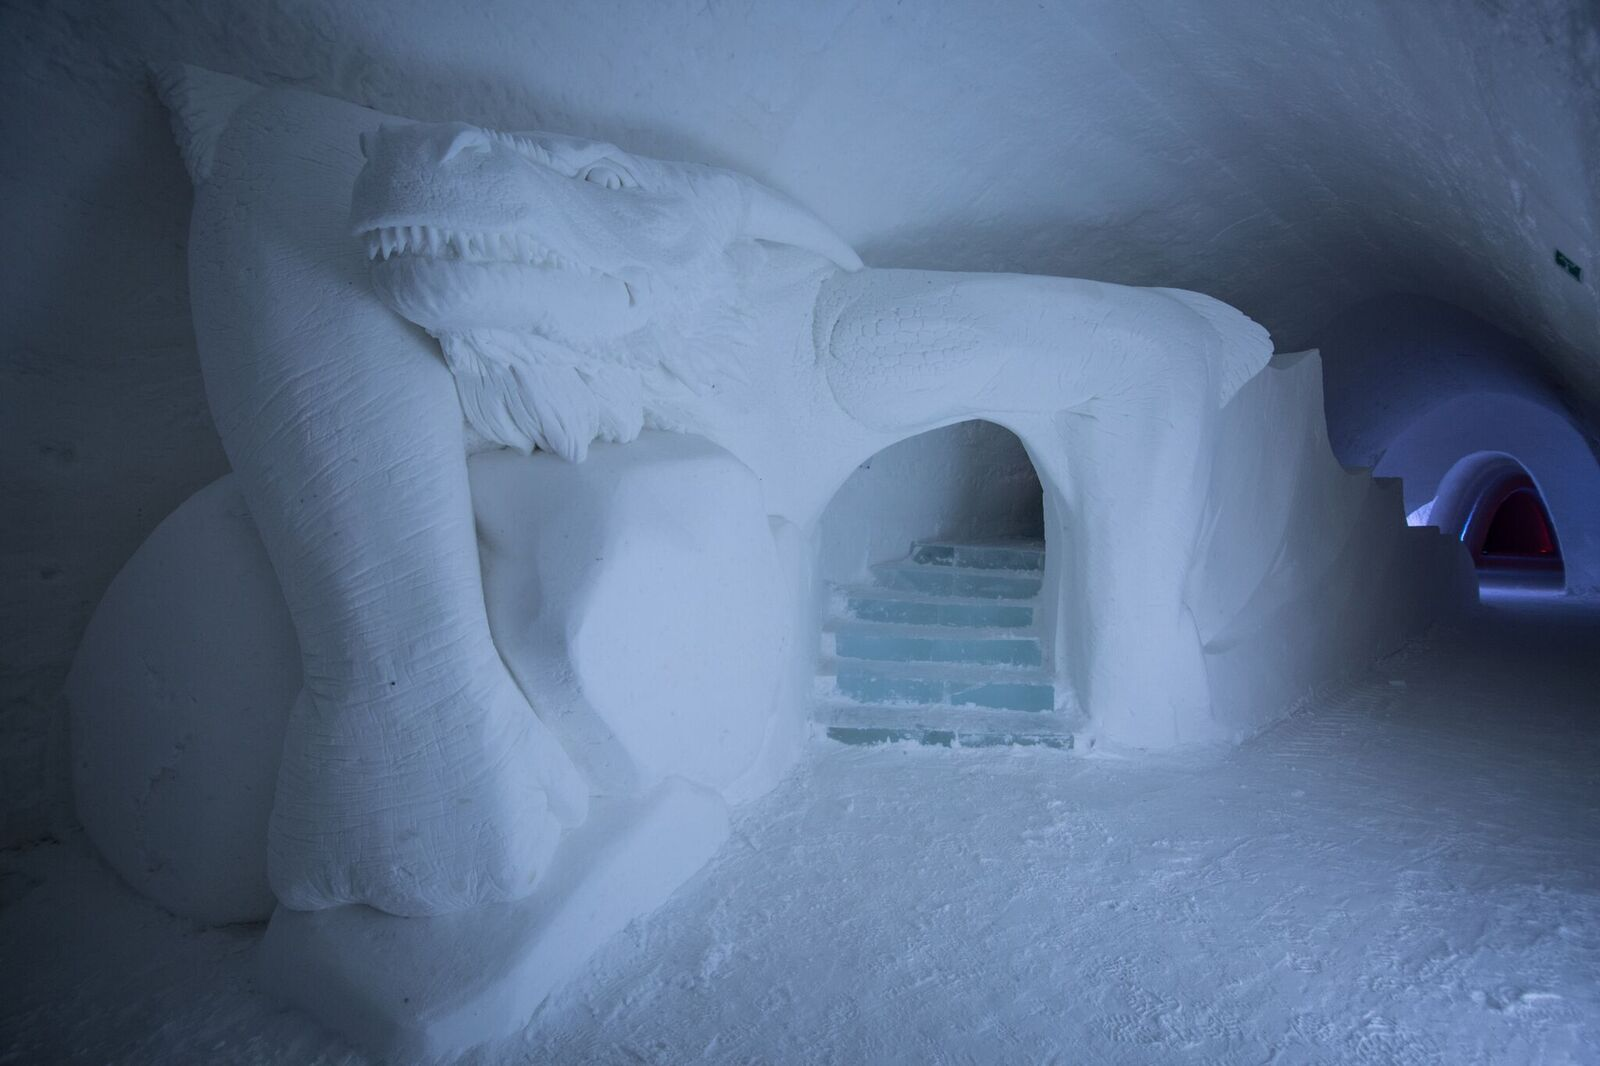 dragon slide in game of thrones hotel in finland